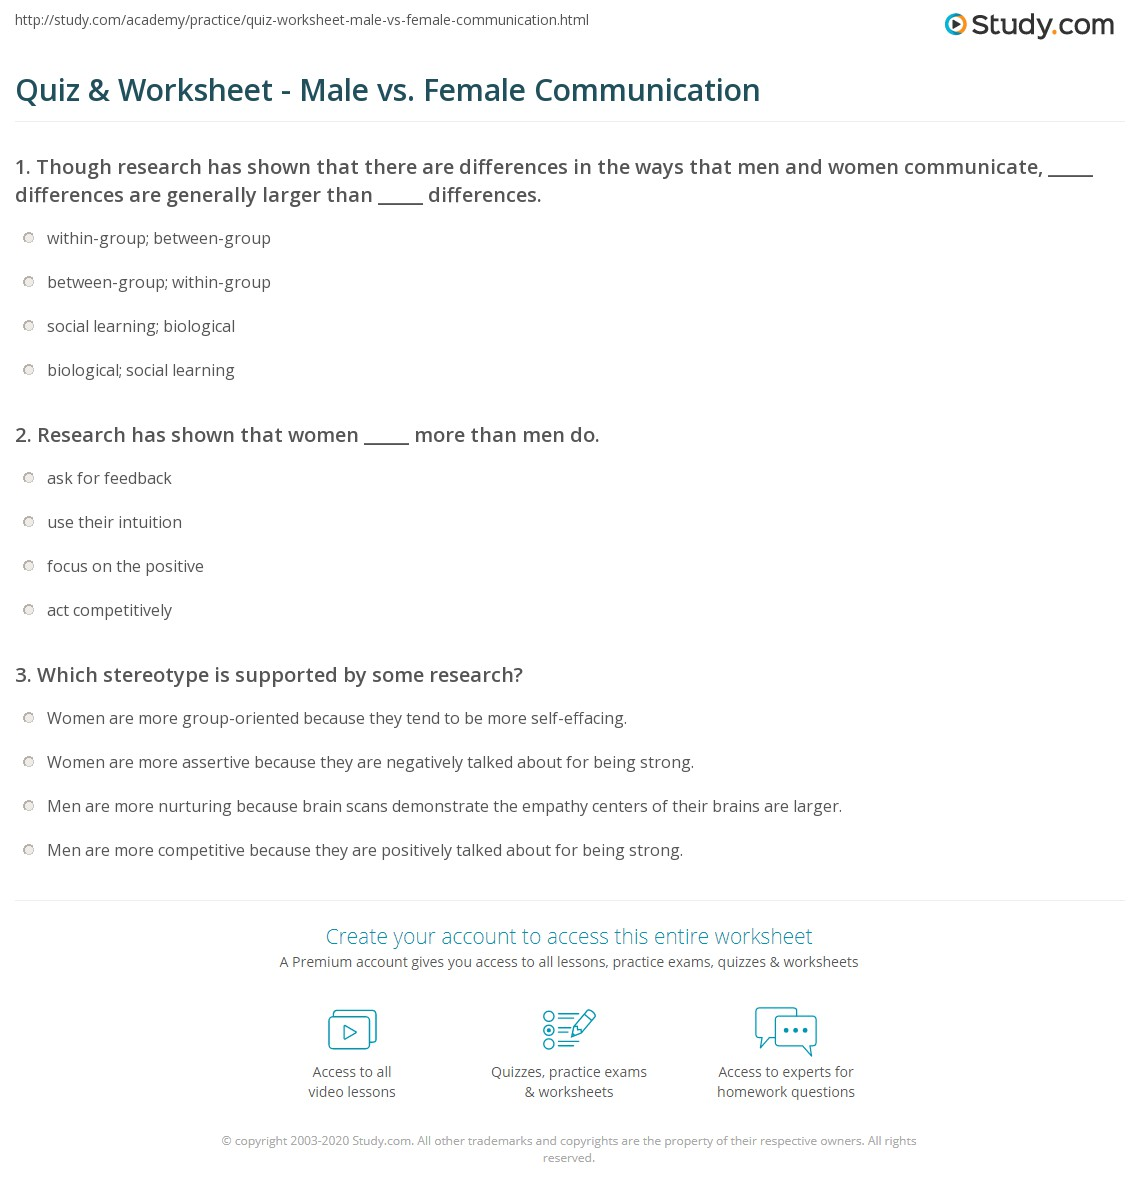 Uncategorized Assertive Communication Worksheet quiz worksheet male vs female communication study com print and styles patterns differences worksheet